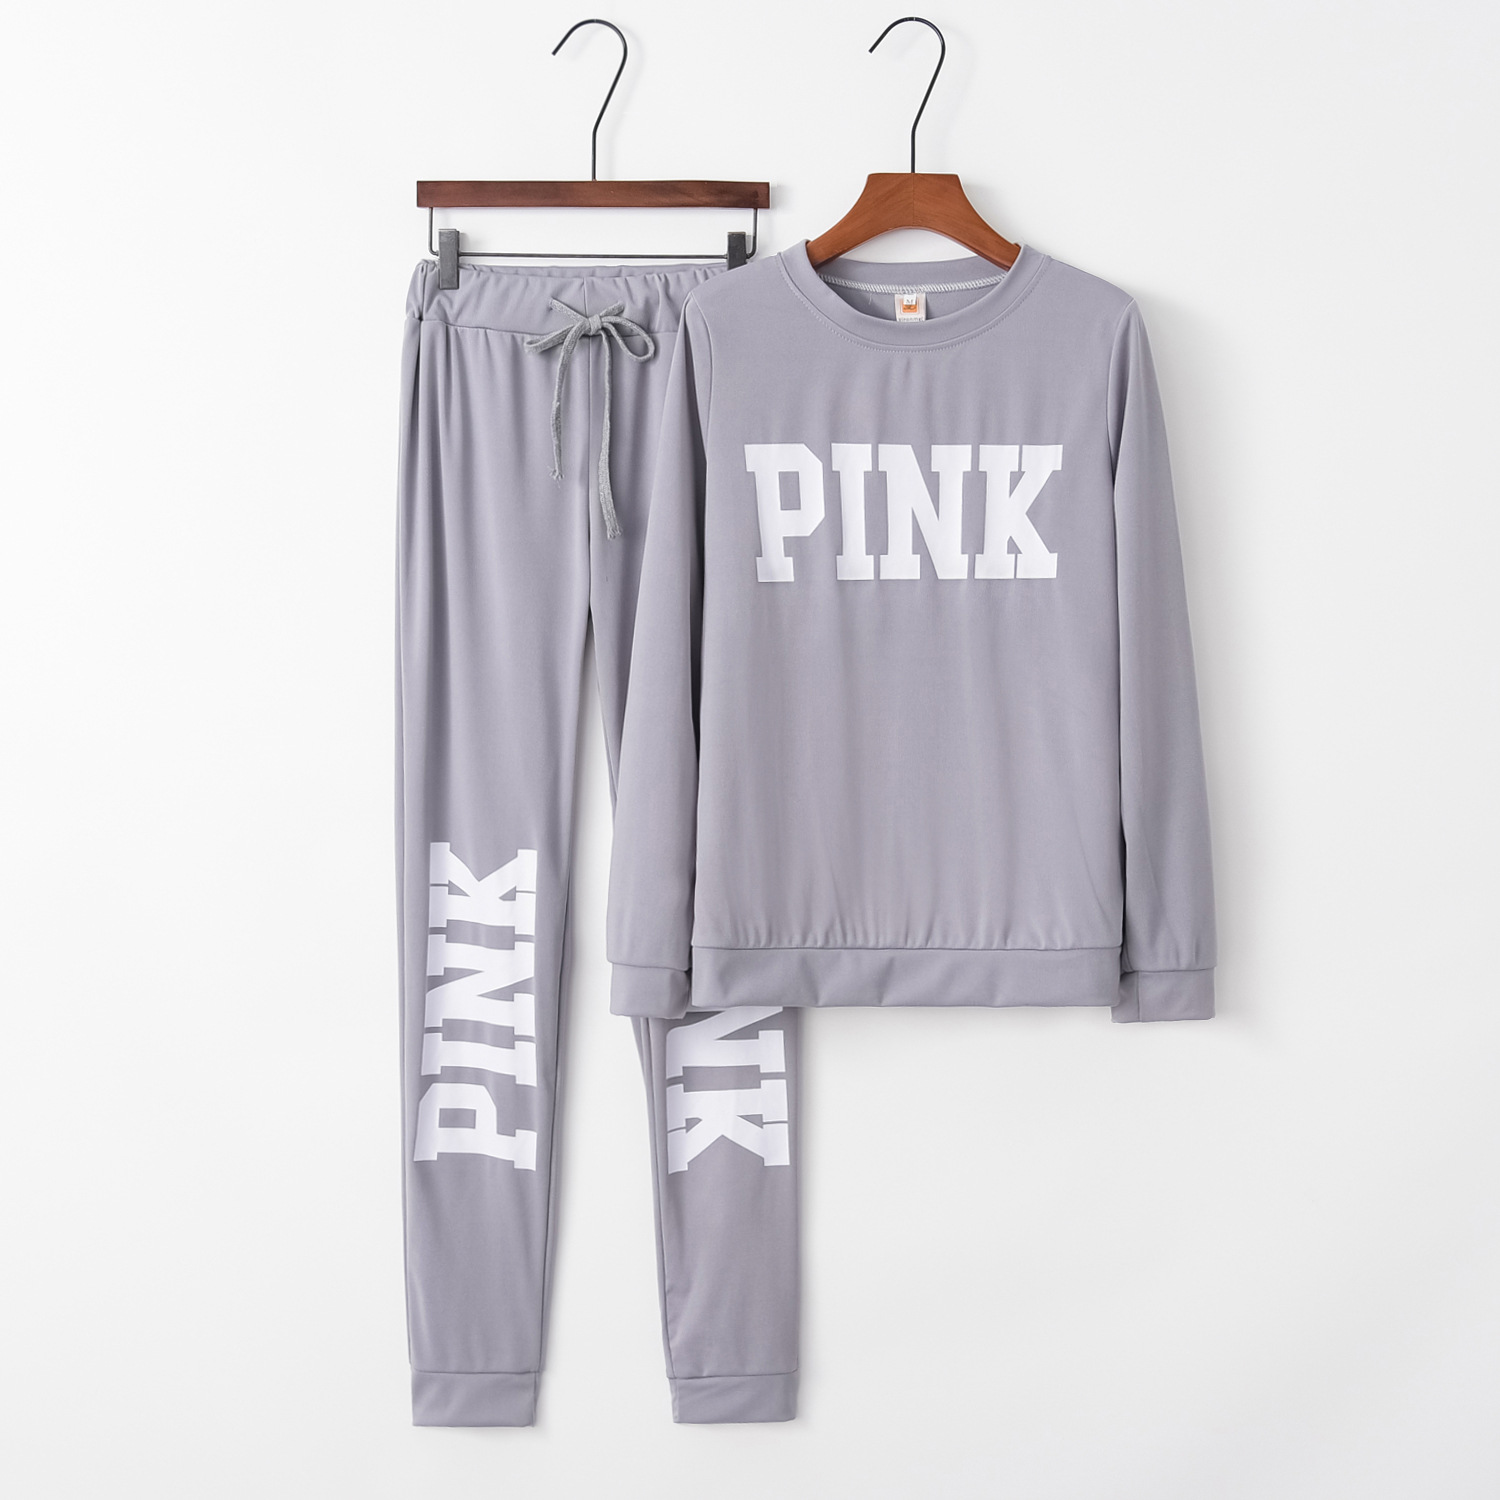 Printed Pink Fashion 2020 New Design Fashion Hot Sale Suit Set Women Tracksuit Two-piece Style Outfit Sweatshirt Sport Wear